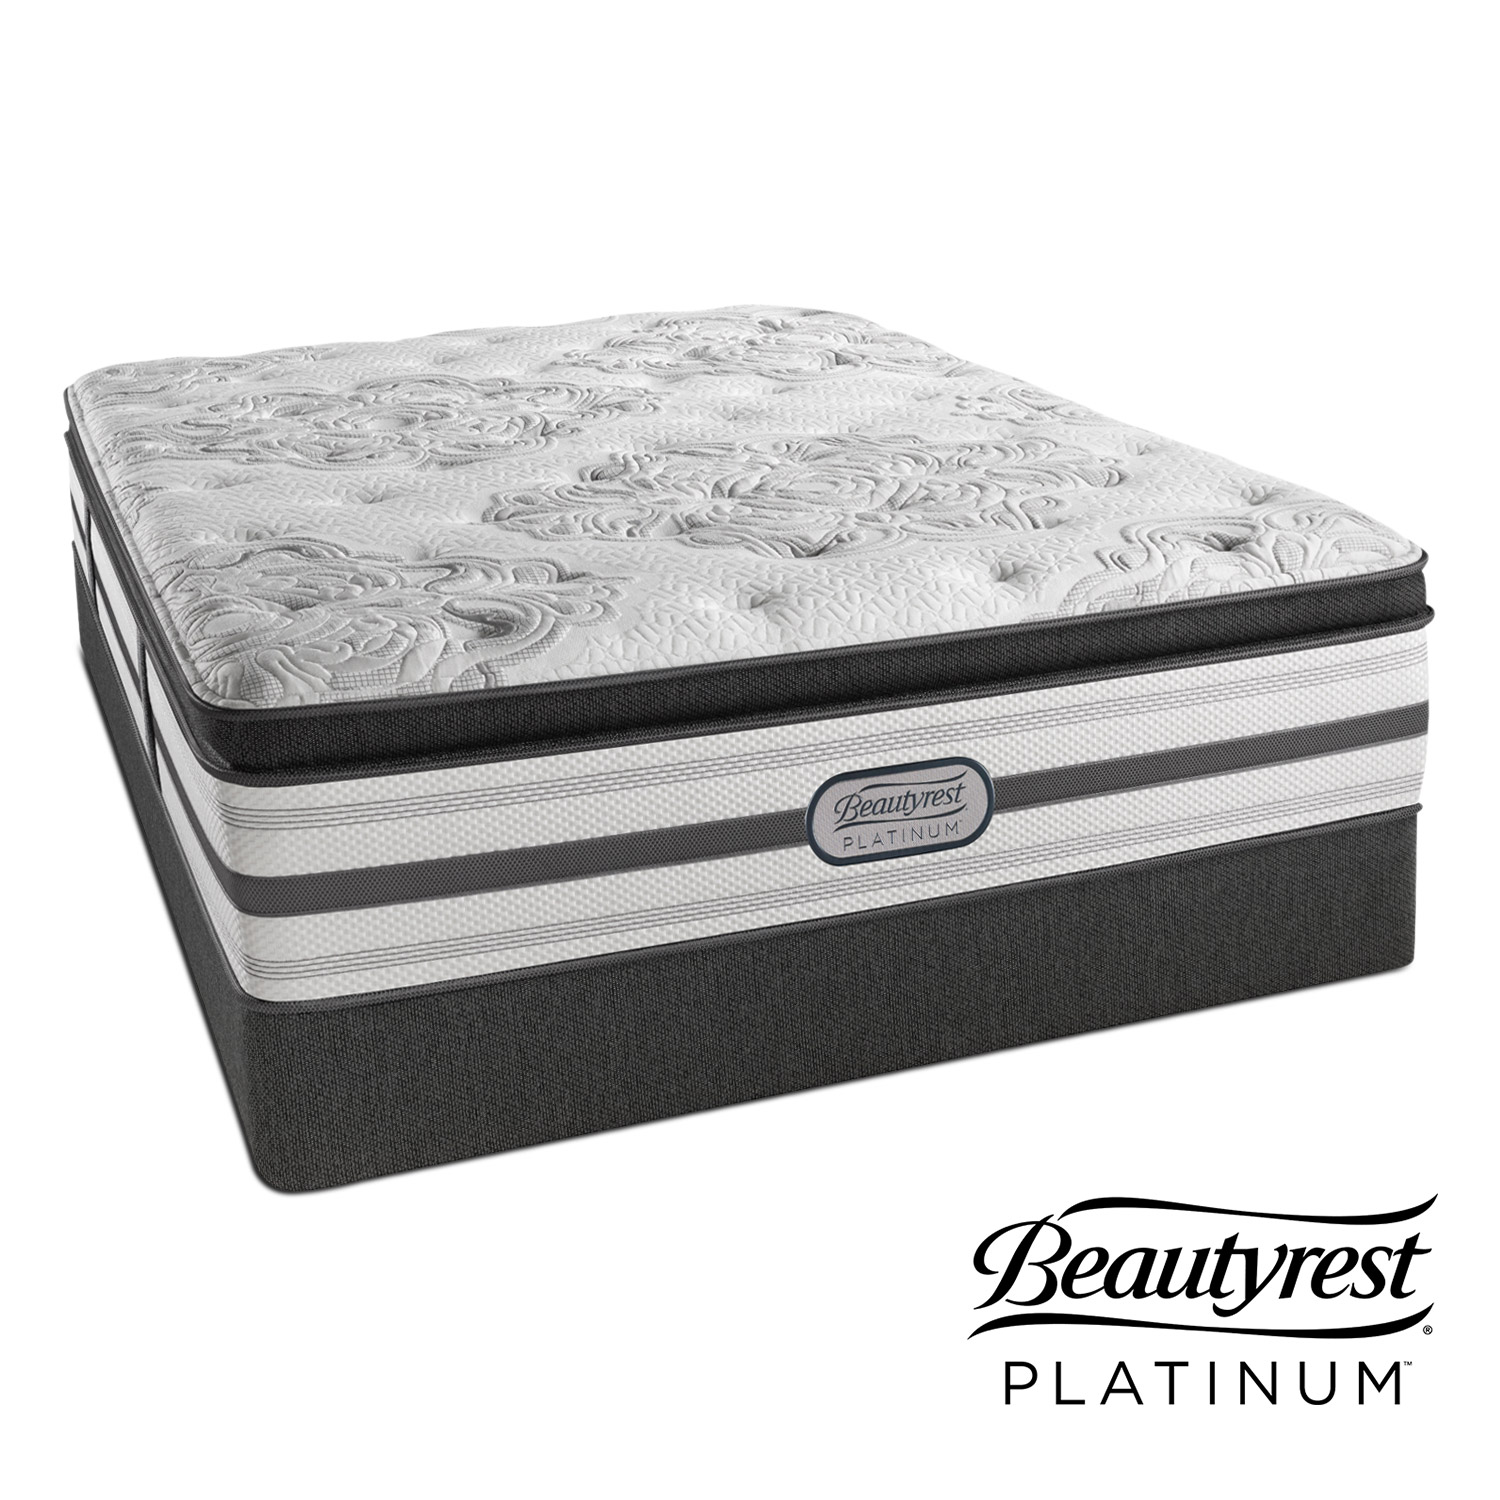 Mattresses and Bedding - Genevieve Plush King Mattress and Split Foundation Set